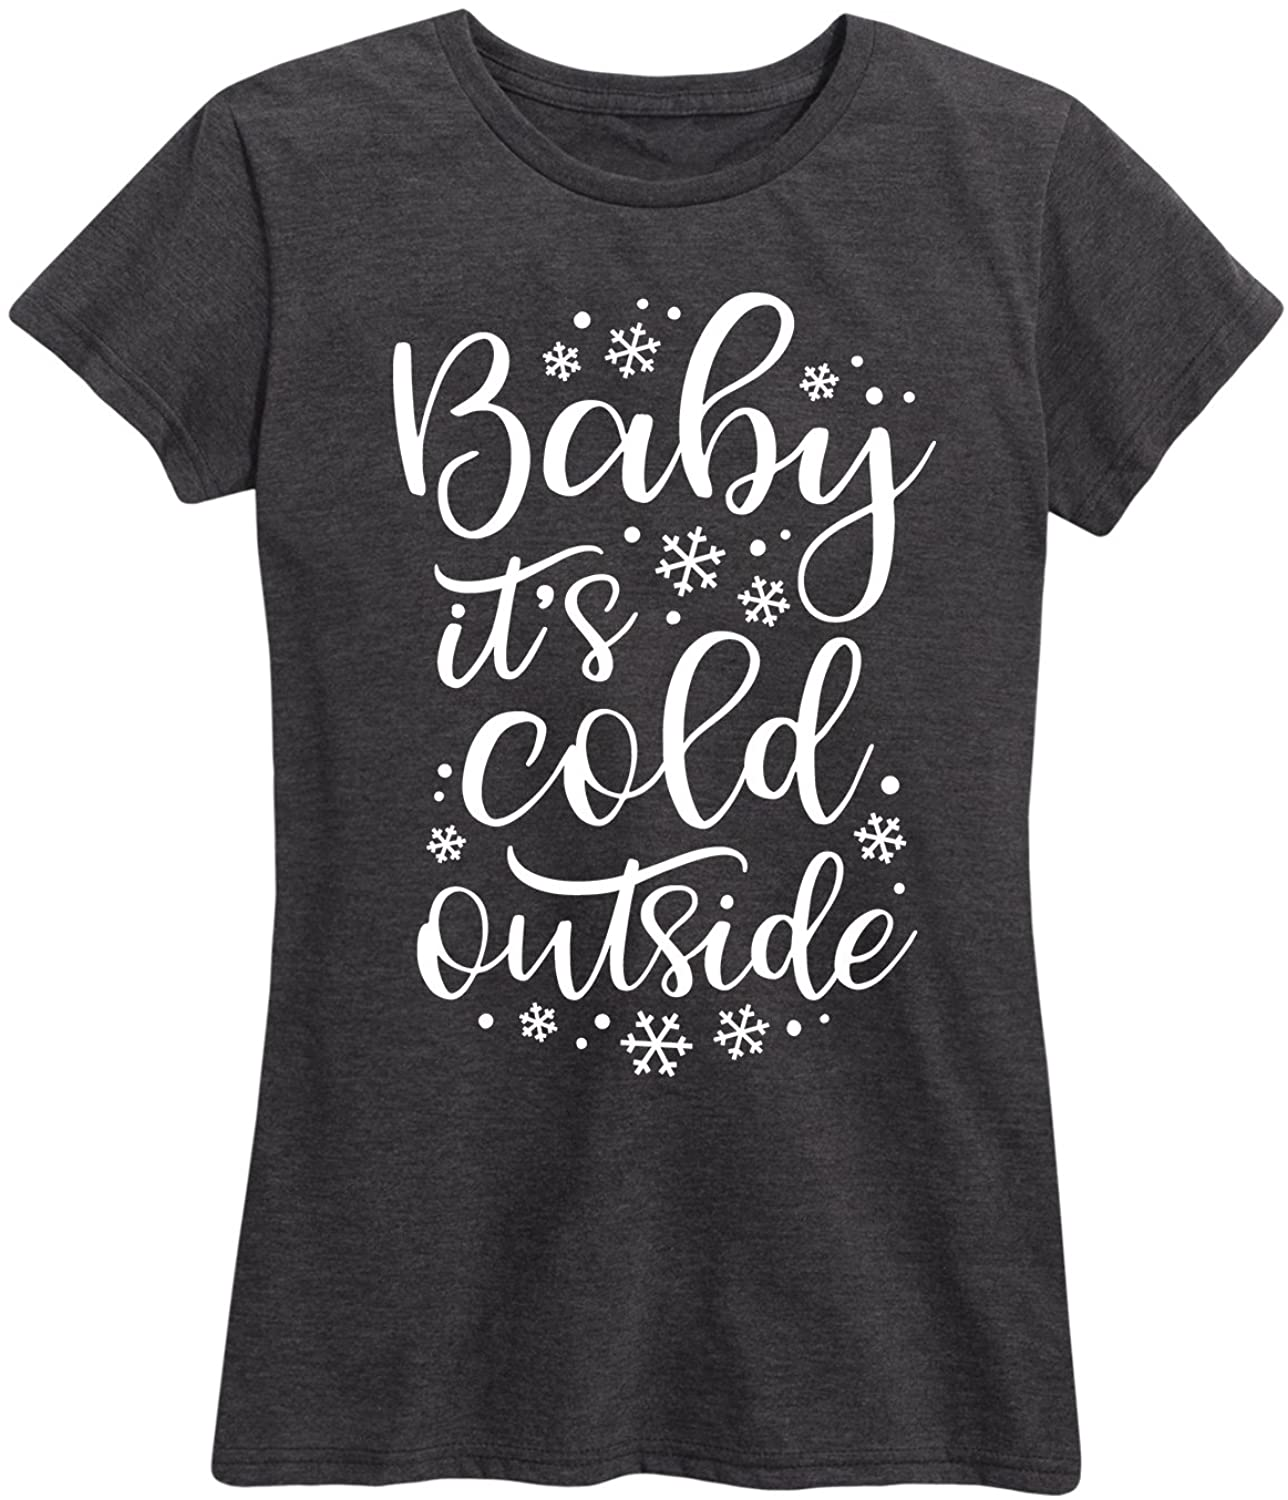 Instant Message Baby Its Cold Outside - Womens Short Sleeve Graphic T-Shirt